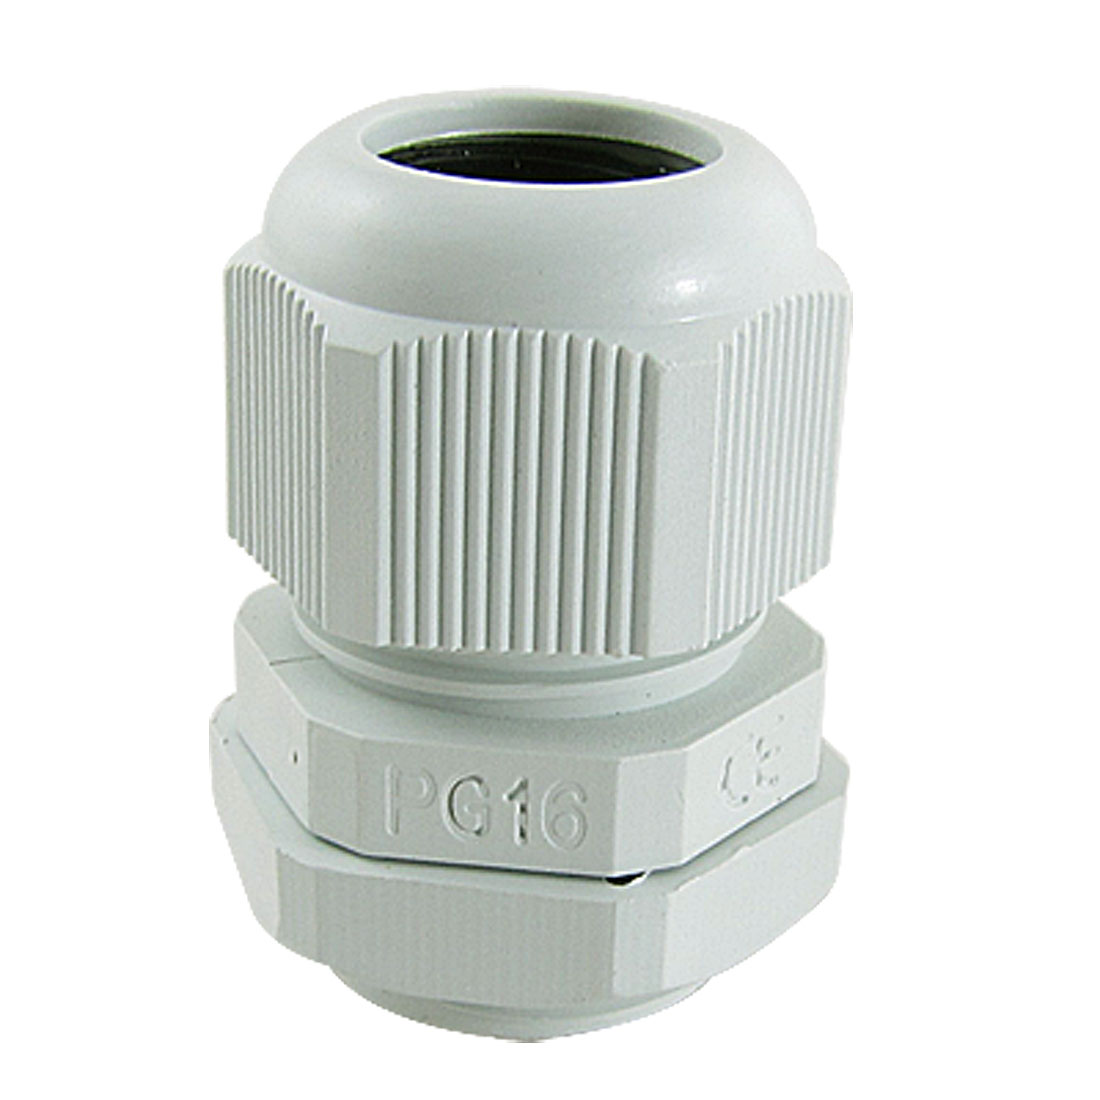 10 Pcs Waterproof PG16 White Plastic Cable Glands Joints